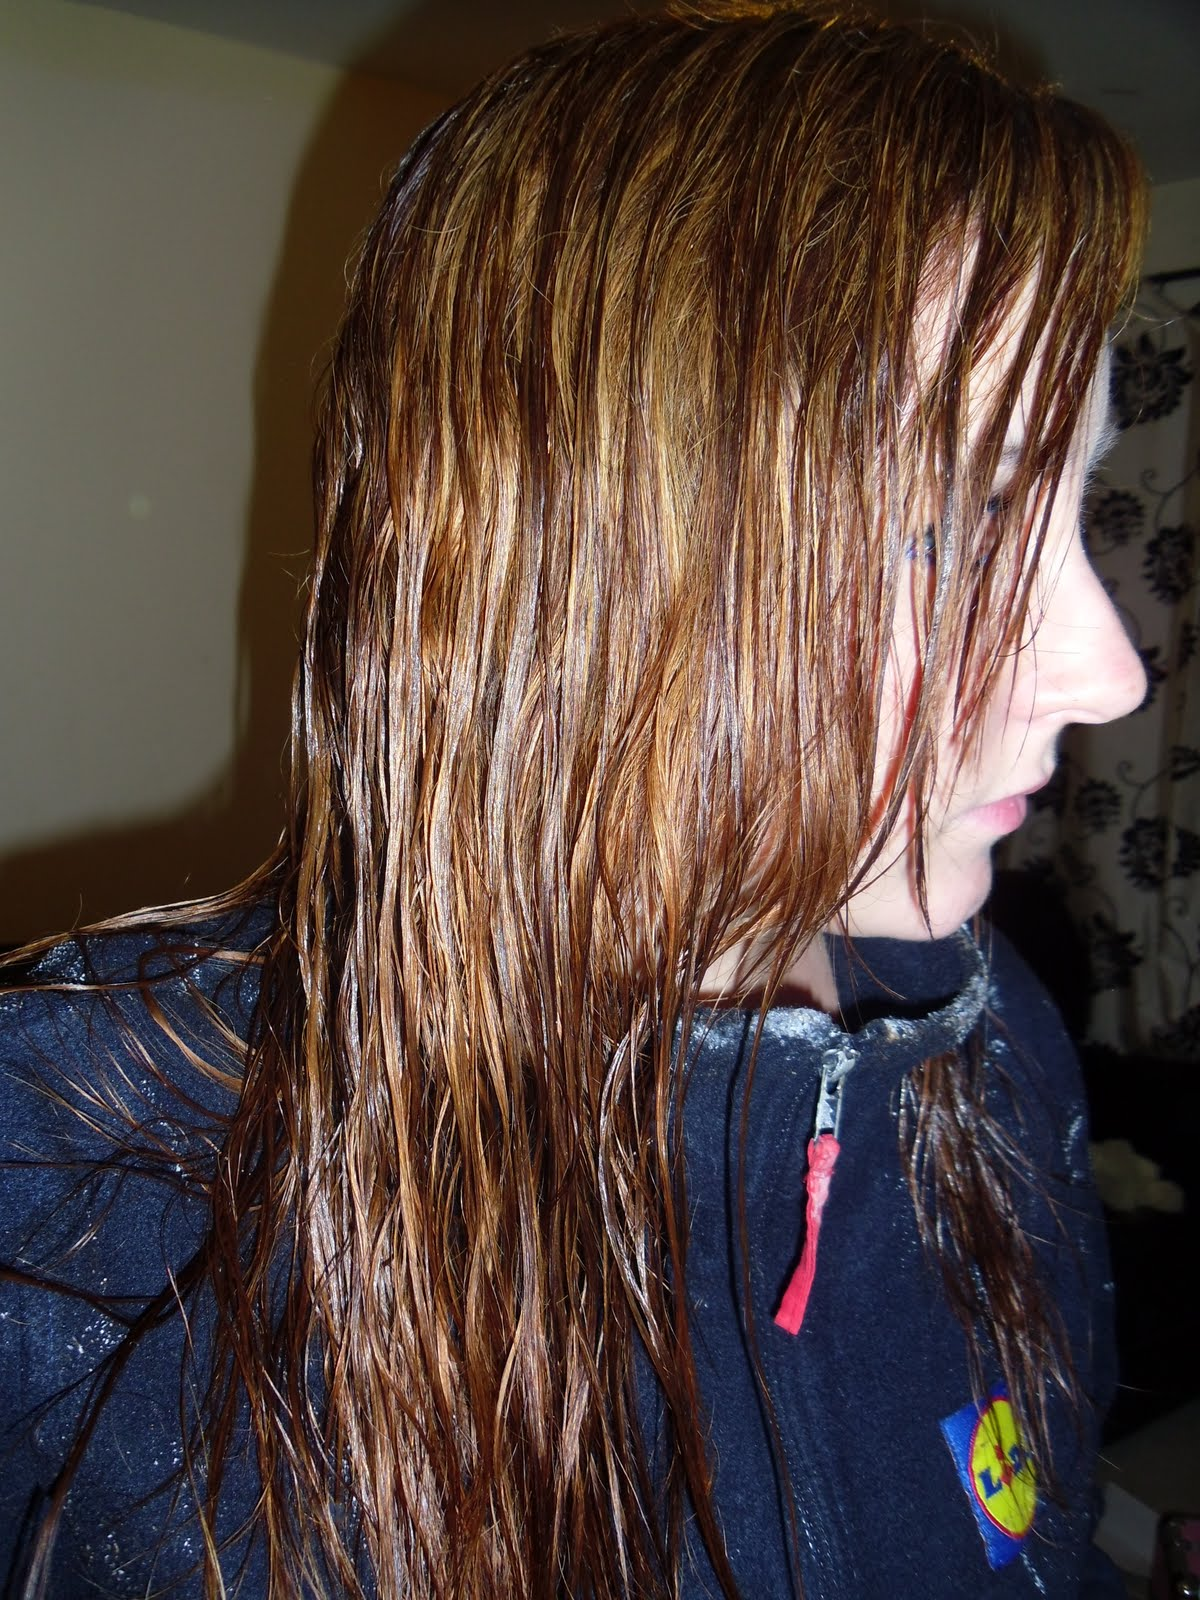 ... Related: Red Tips On Light Brown Hair , Purple Tips On Brown Hair